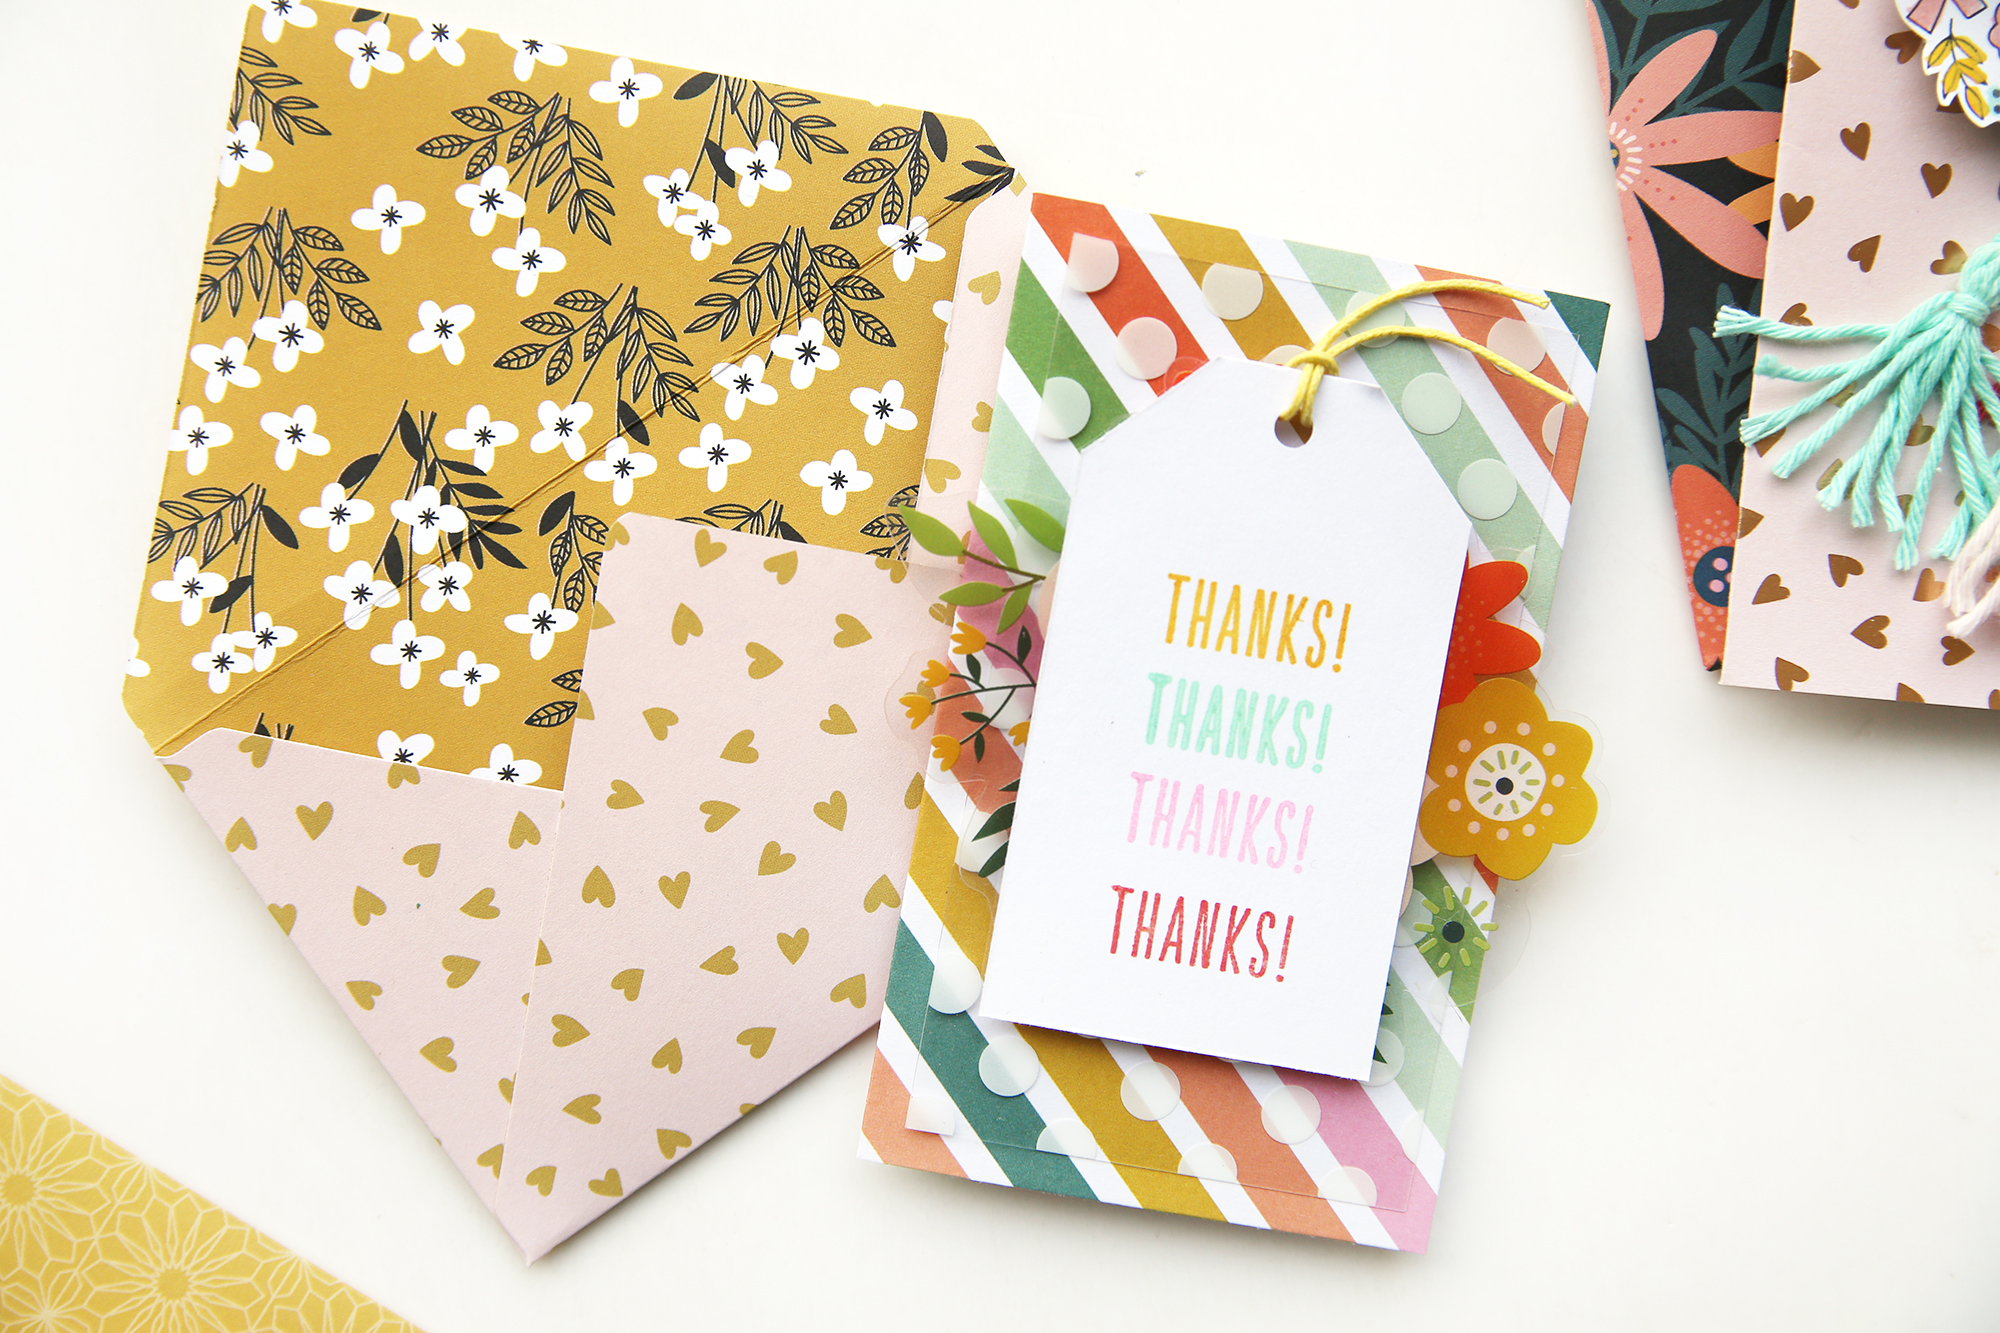 Make Handmade Cards with The Works All In One Tool by Eva Pizarro for We R Memory Keepers